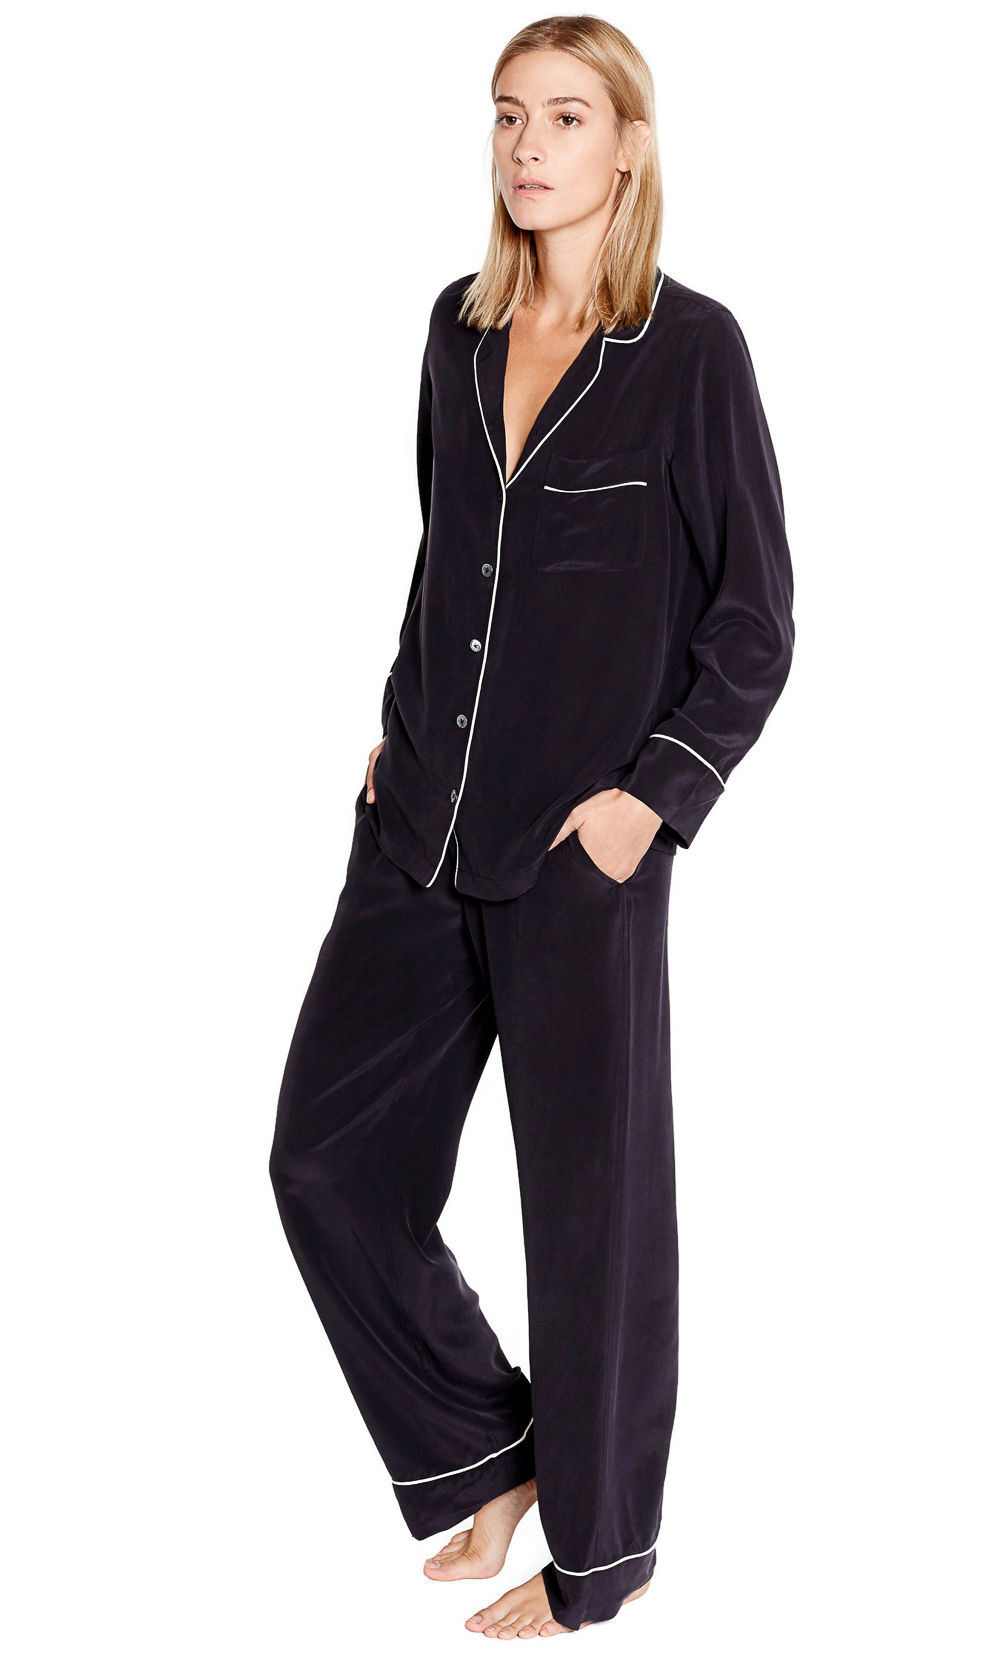 Women's Luxurious Sleepwear & Pyjamas